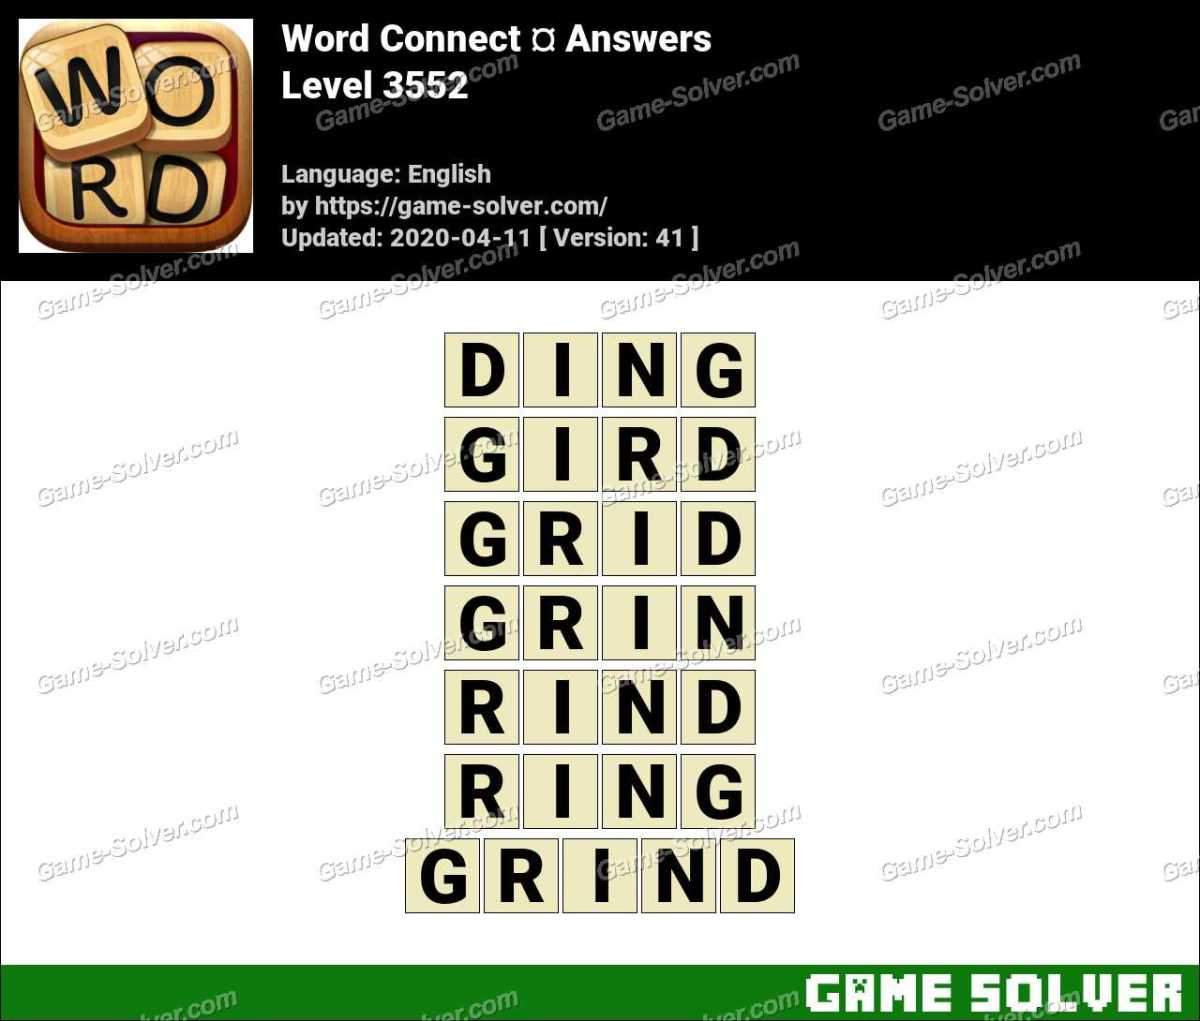 Word Connect Level 3552 Answers